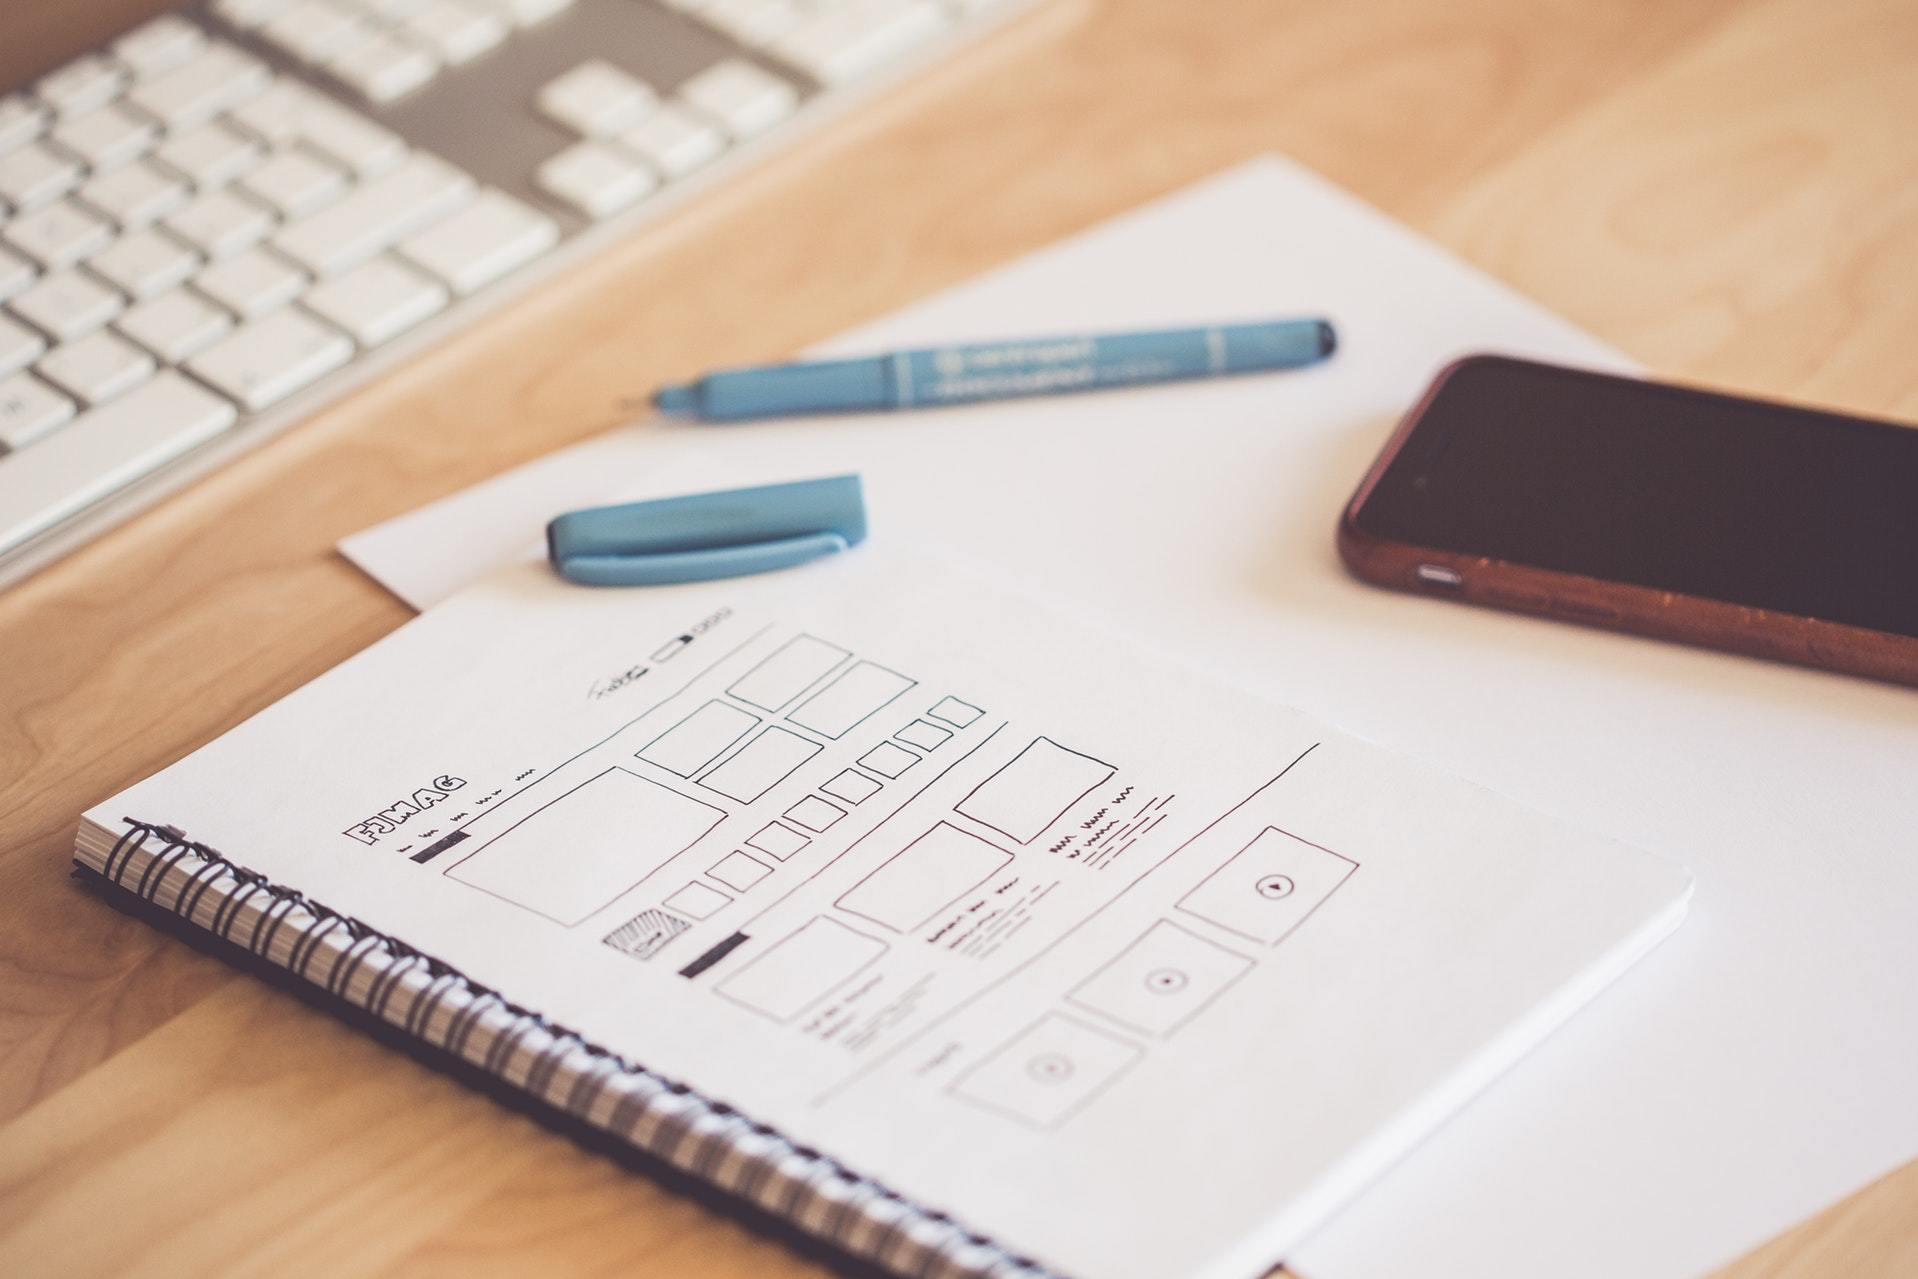 How to Design a Website: A Beginner's Guide